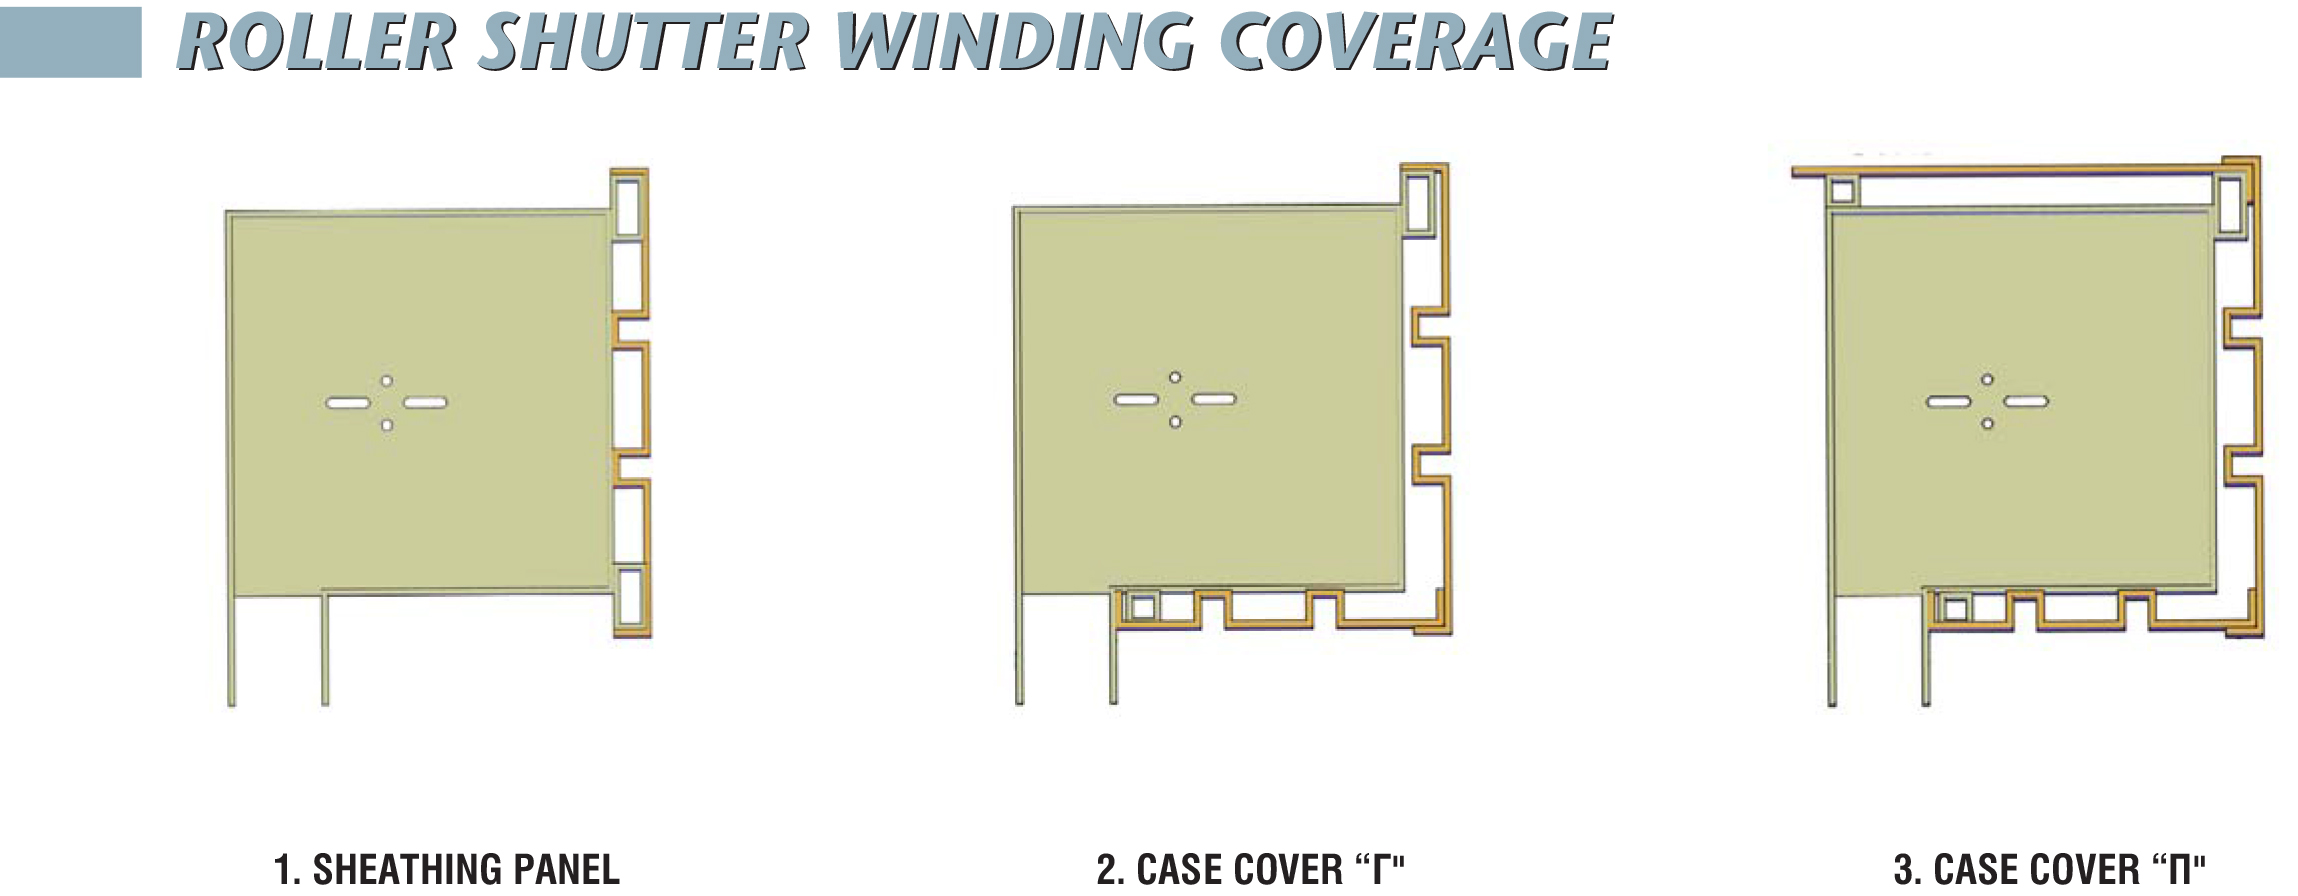 Winding Coverage